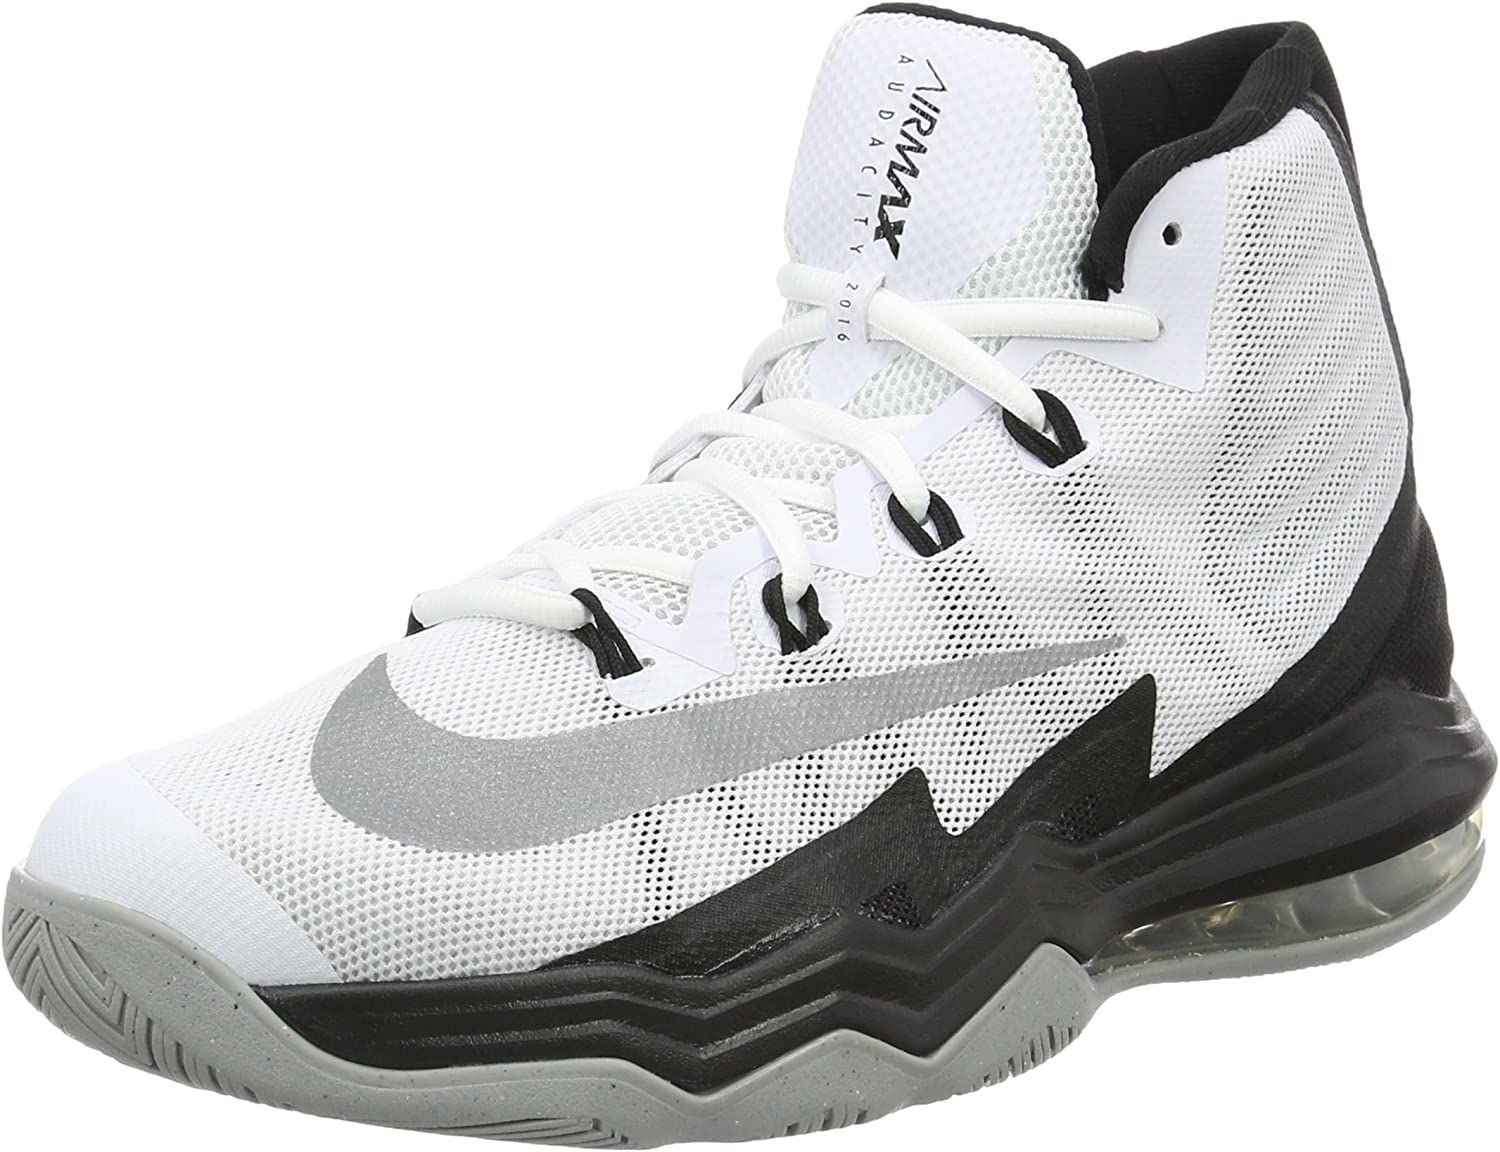 argumento Broma Infrarrojo  Amazon.com | Nike Air Max Audacity 2016 Men's Shoes White/Silver/Black/Wolf  Grey 843884-100 (8.5 D(M) US) | Basketball